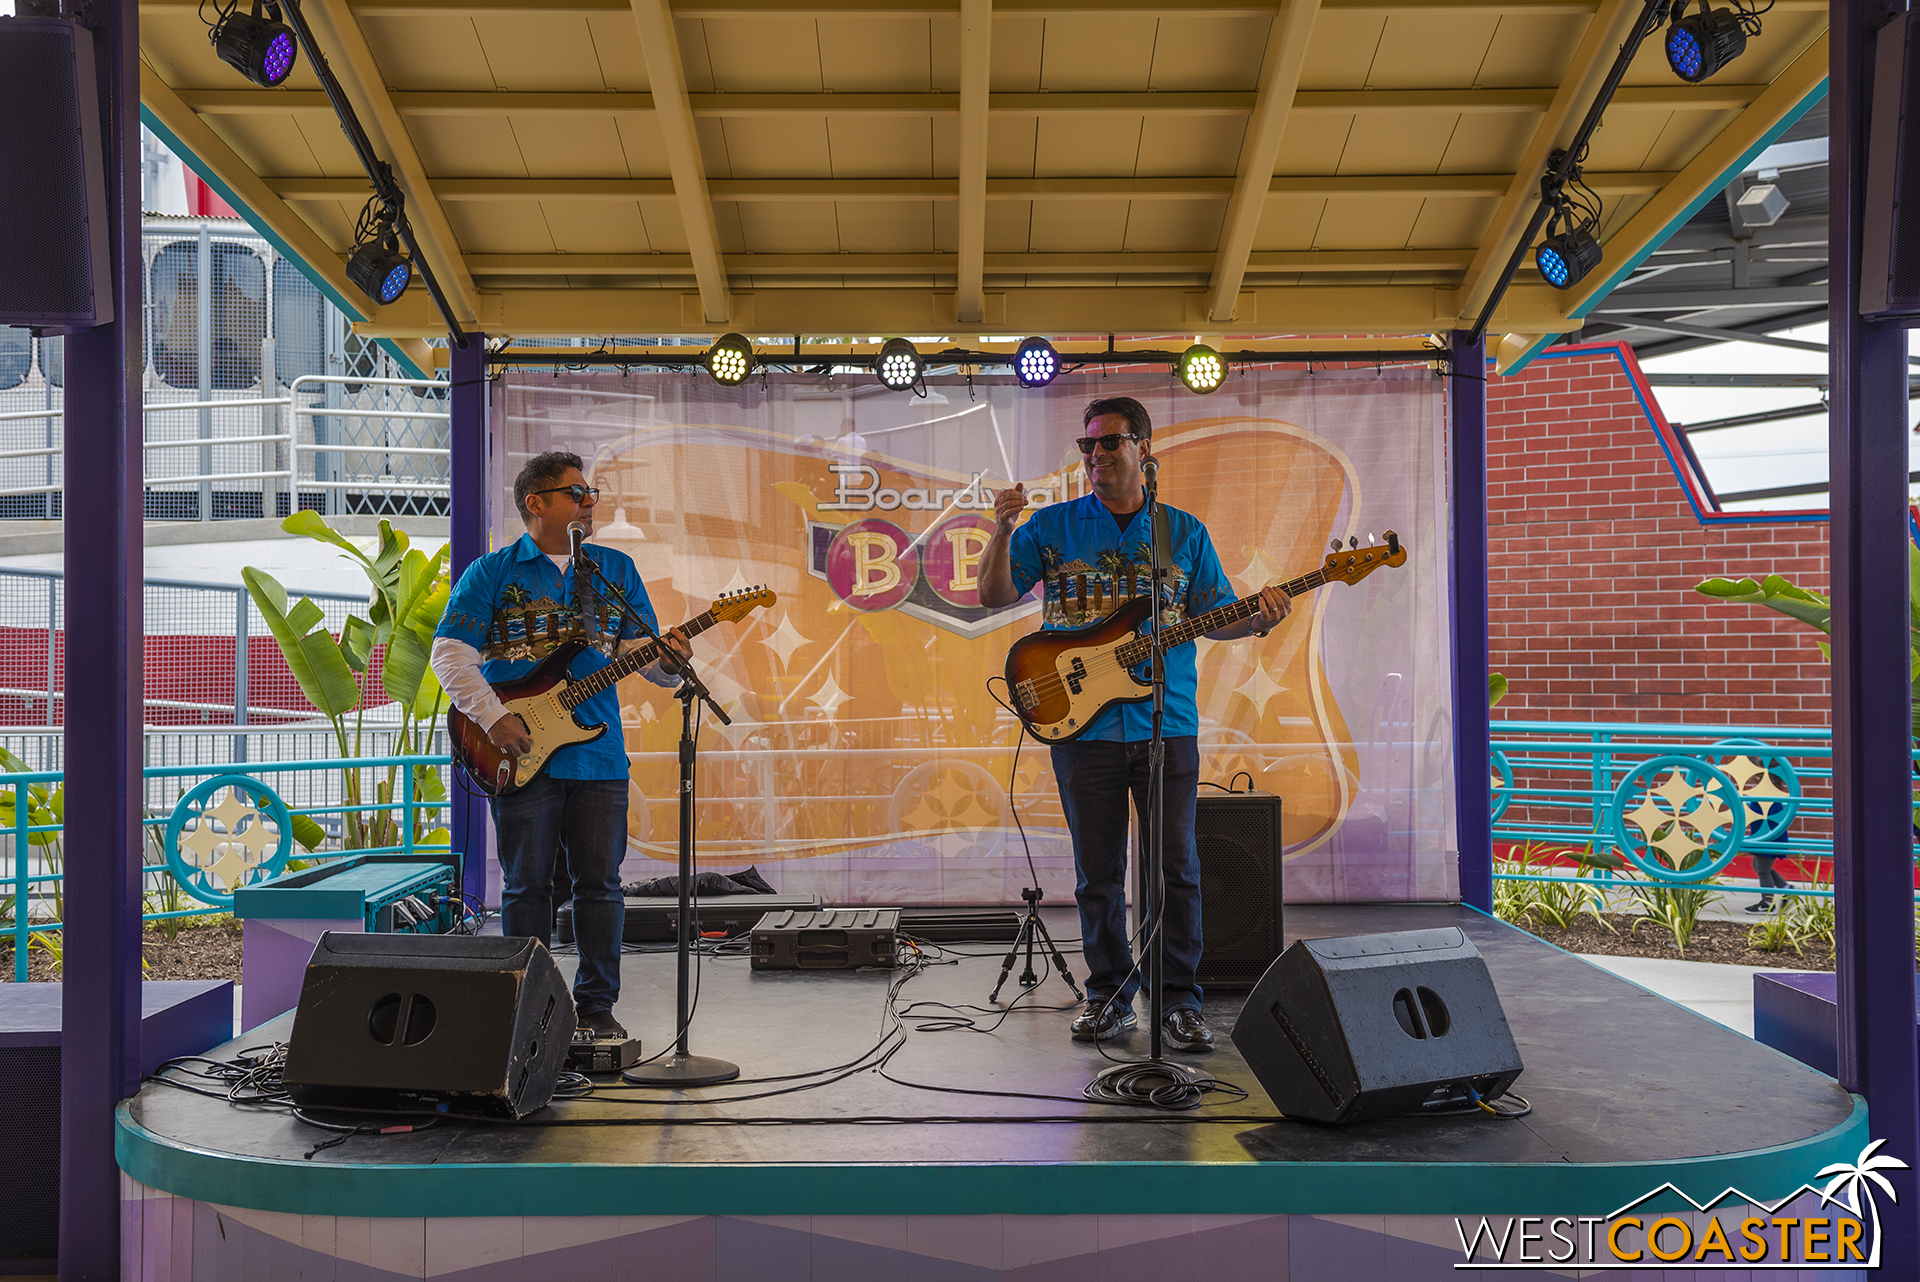 Looking for surf music? Come to the Boardwalk BBQ.